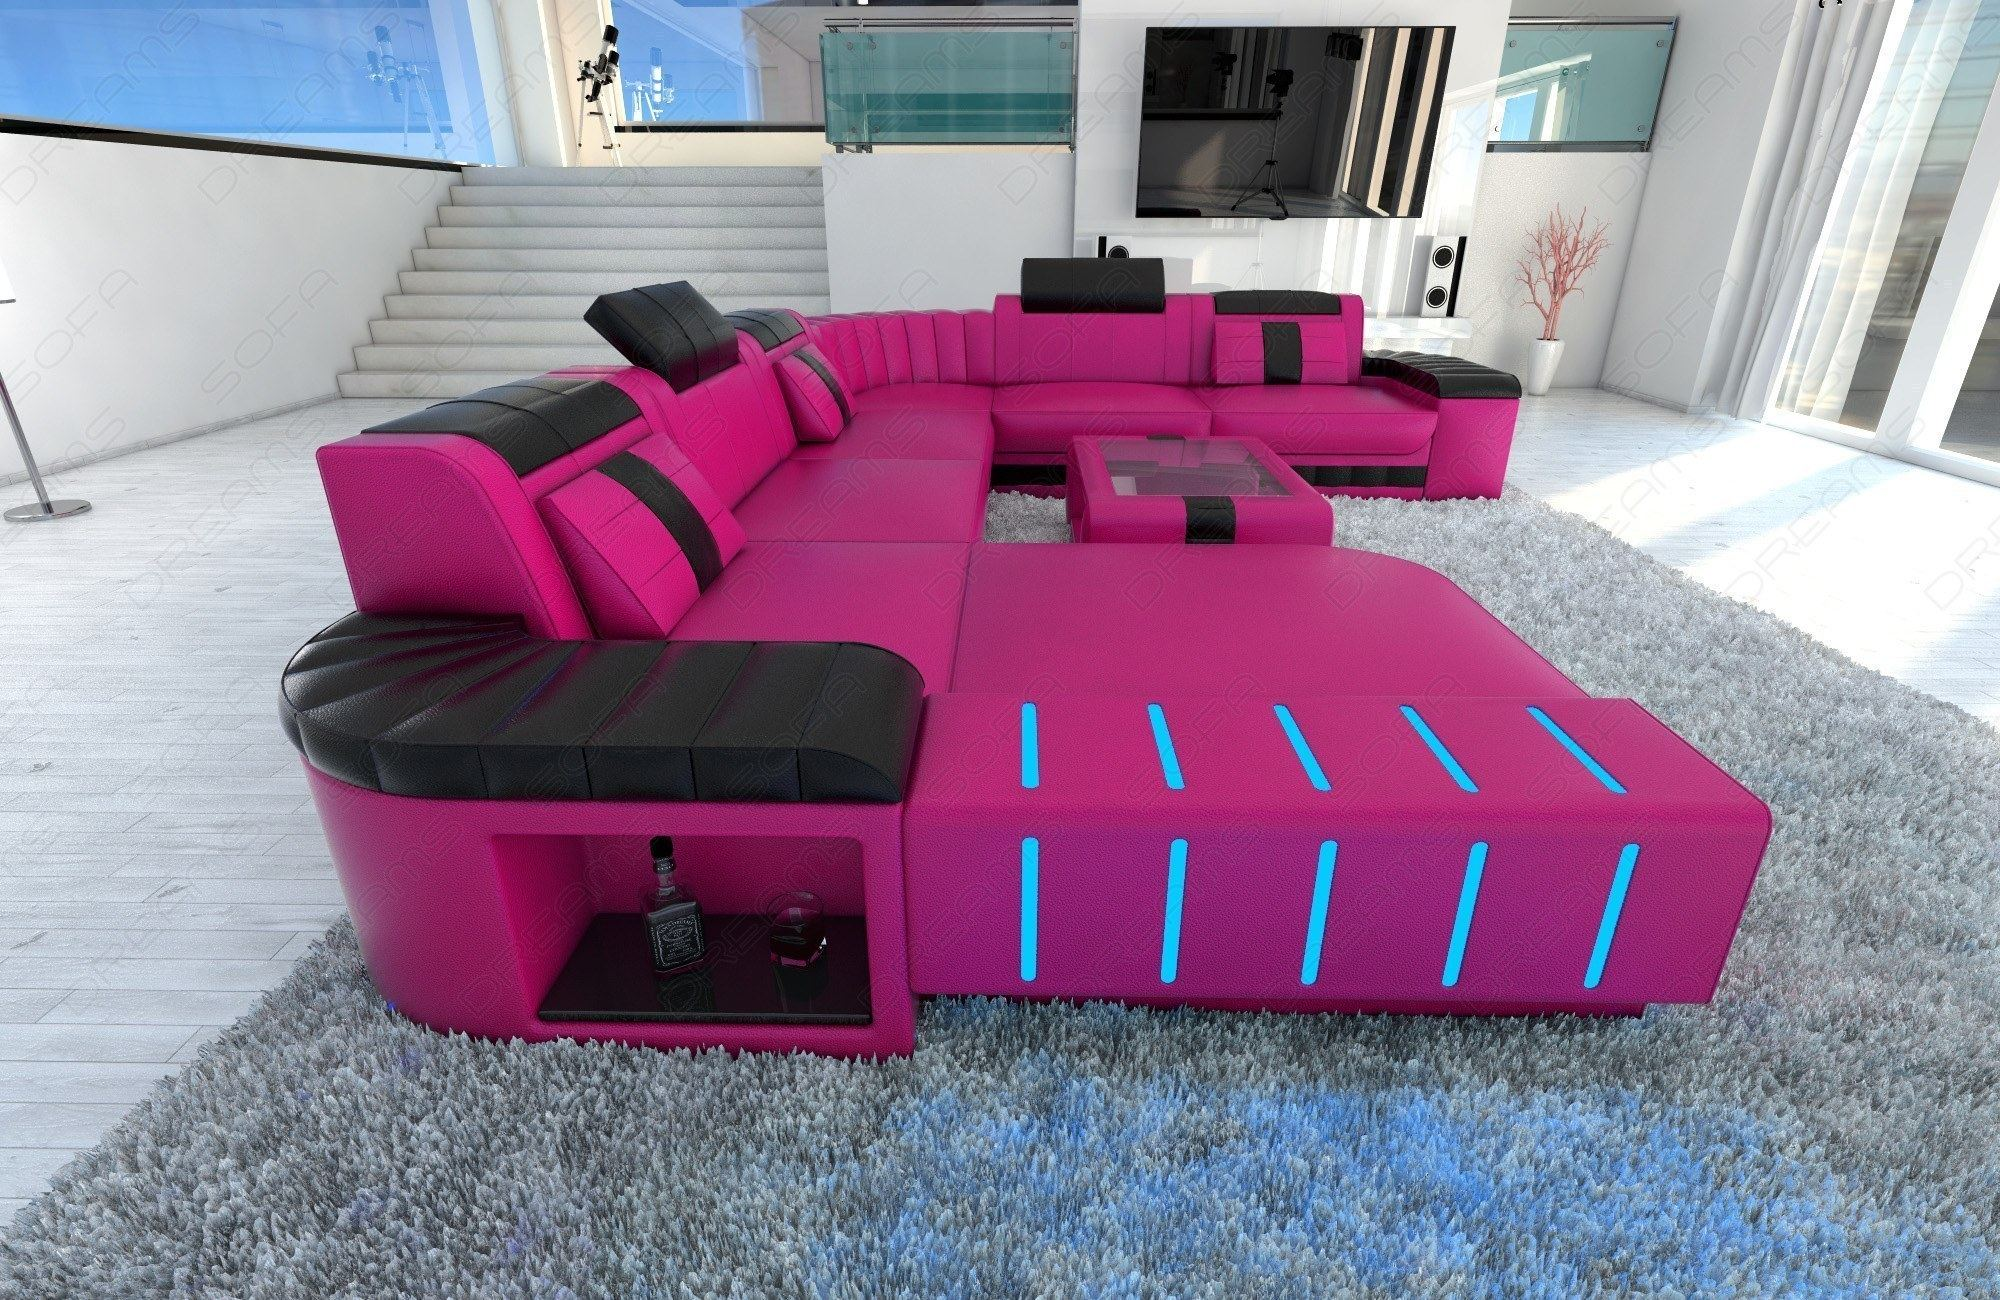 unusual shaped sofas uk most comfortable sofa bed or futon xxl sectional bellagio led u pink black ebay